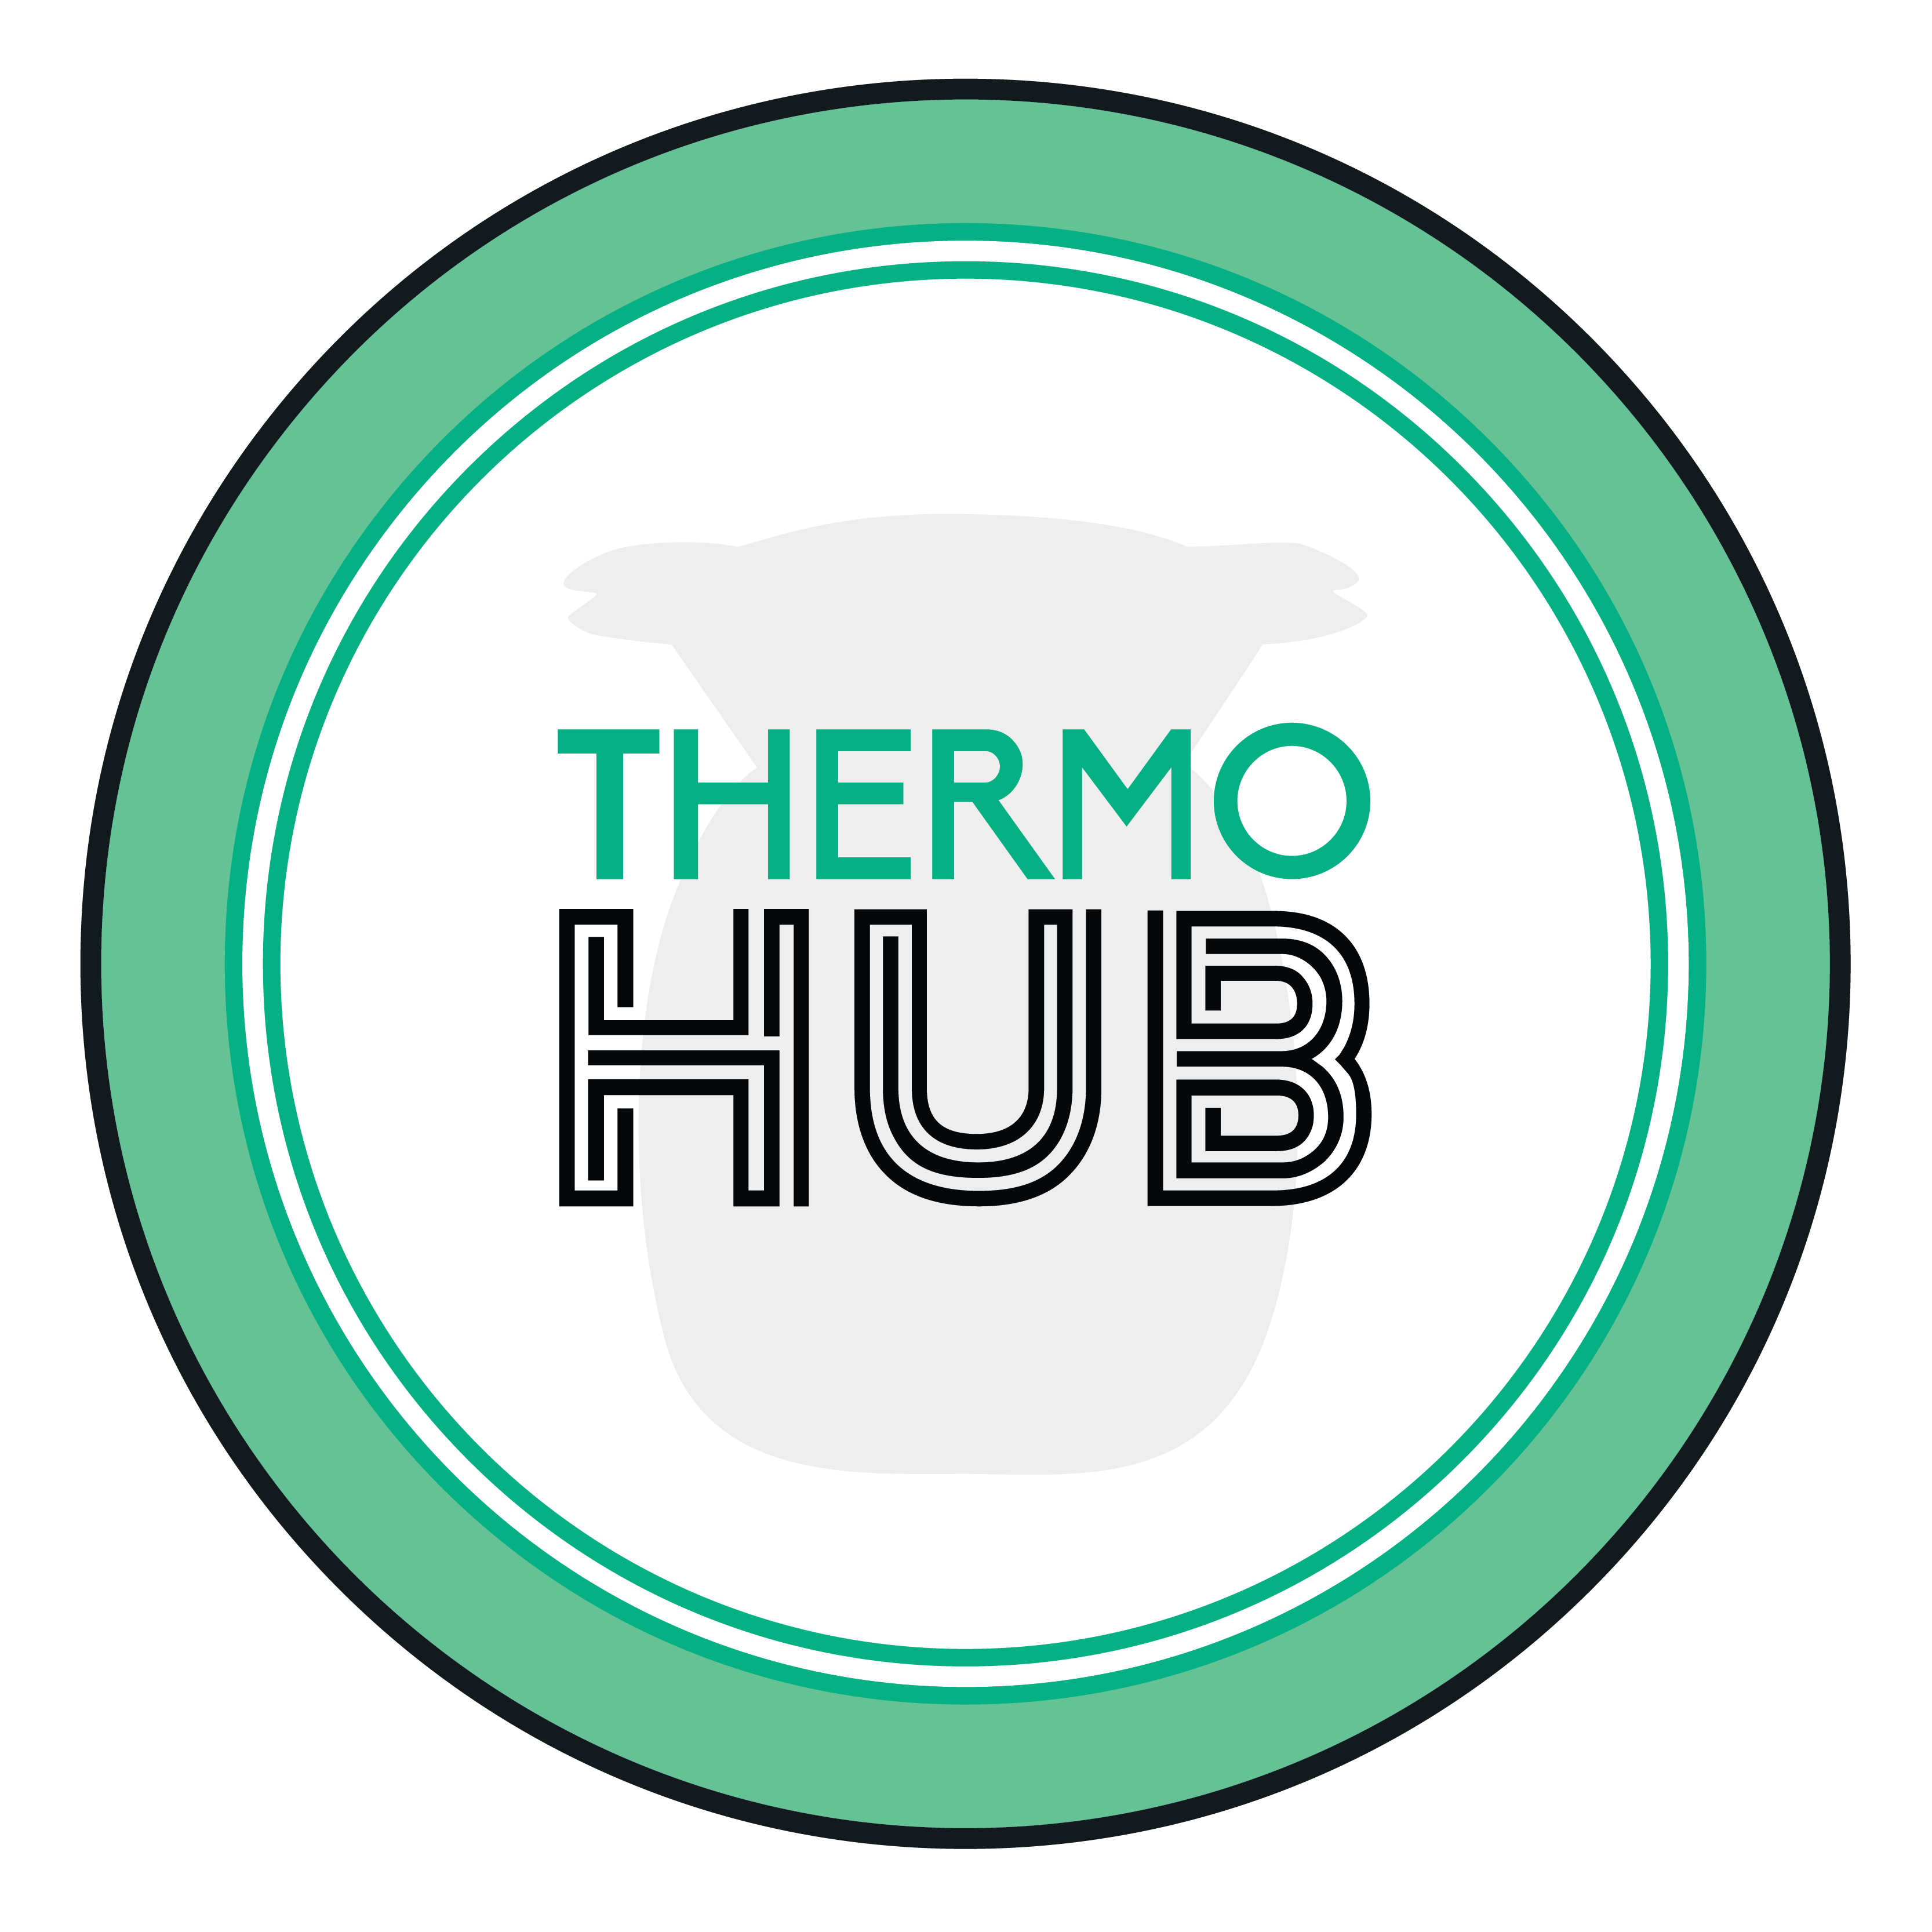 Thermohub cmyk the thrifty. Coupon clipart thriftiness